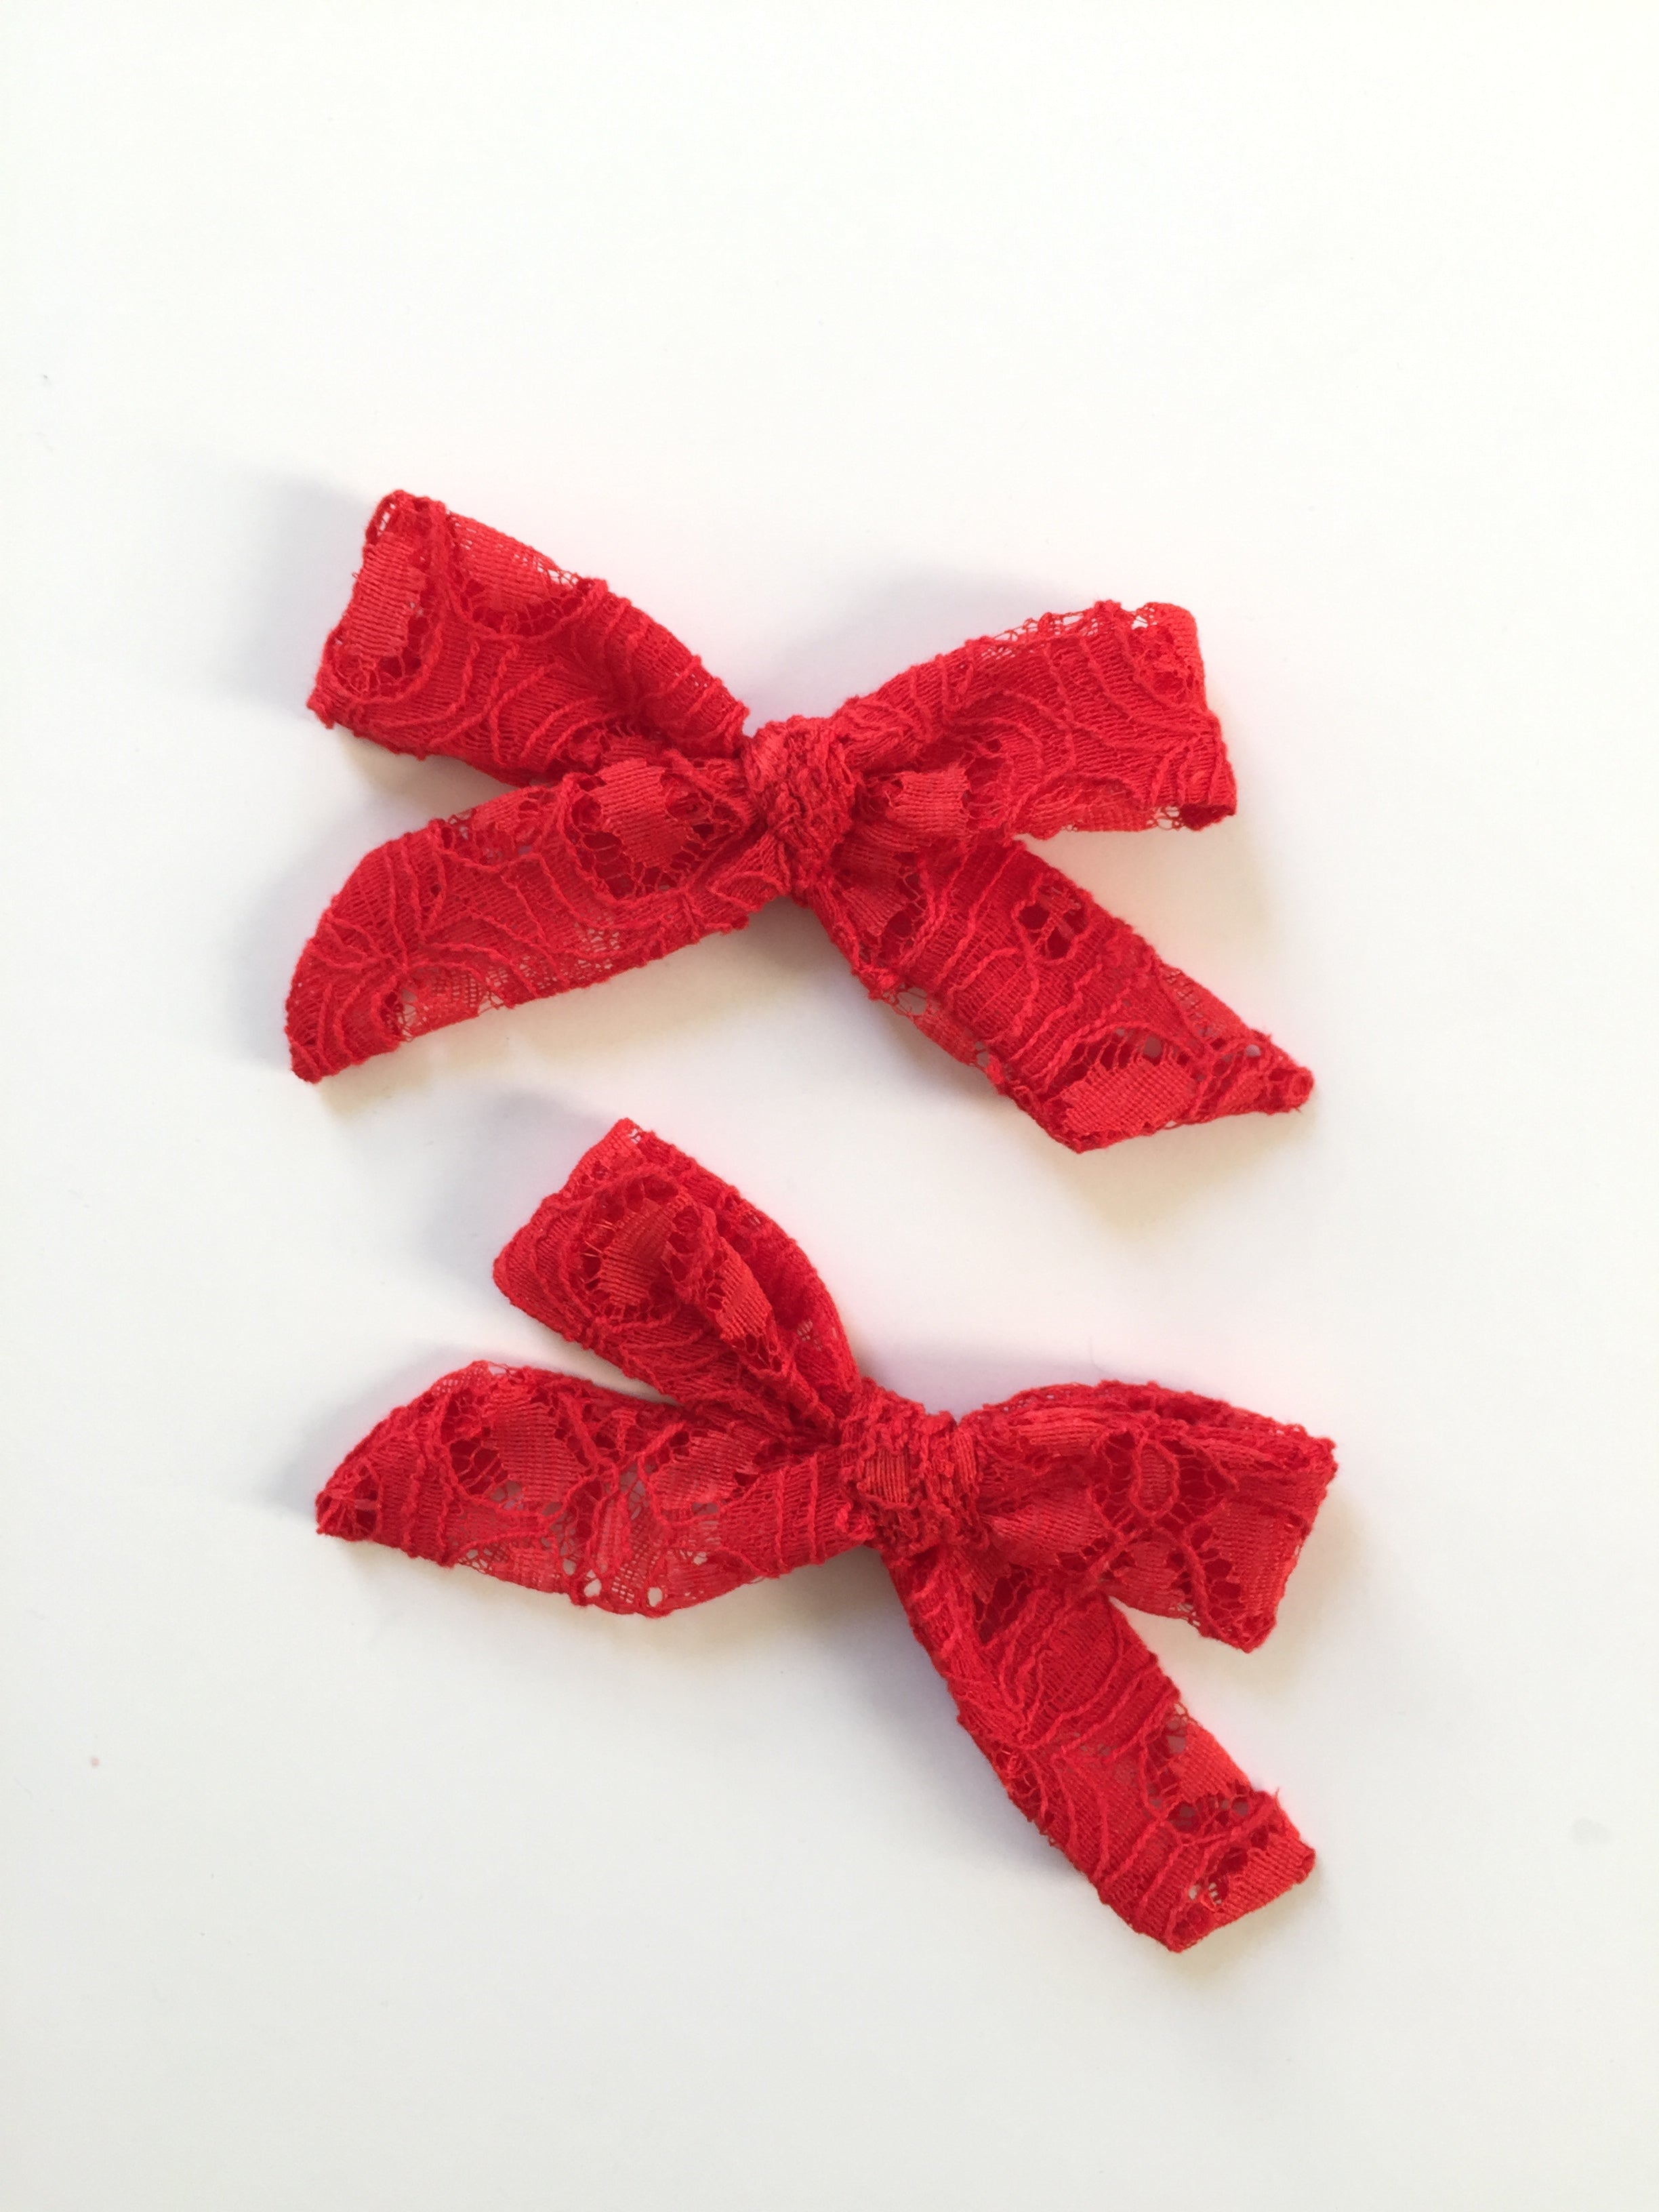 Red Daisy Lace LANA Pigtail Bows